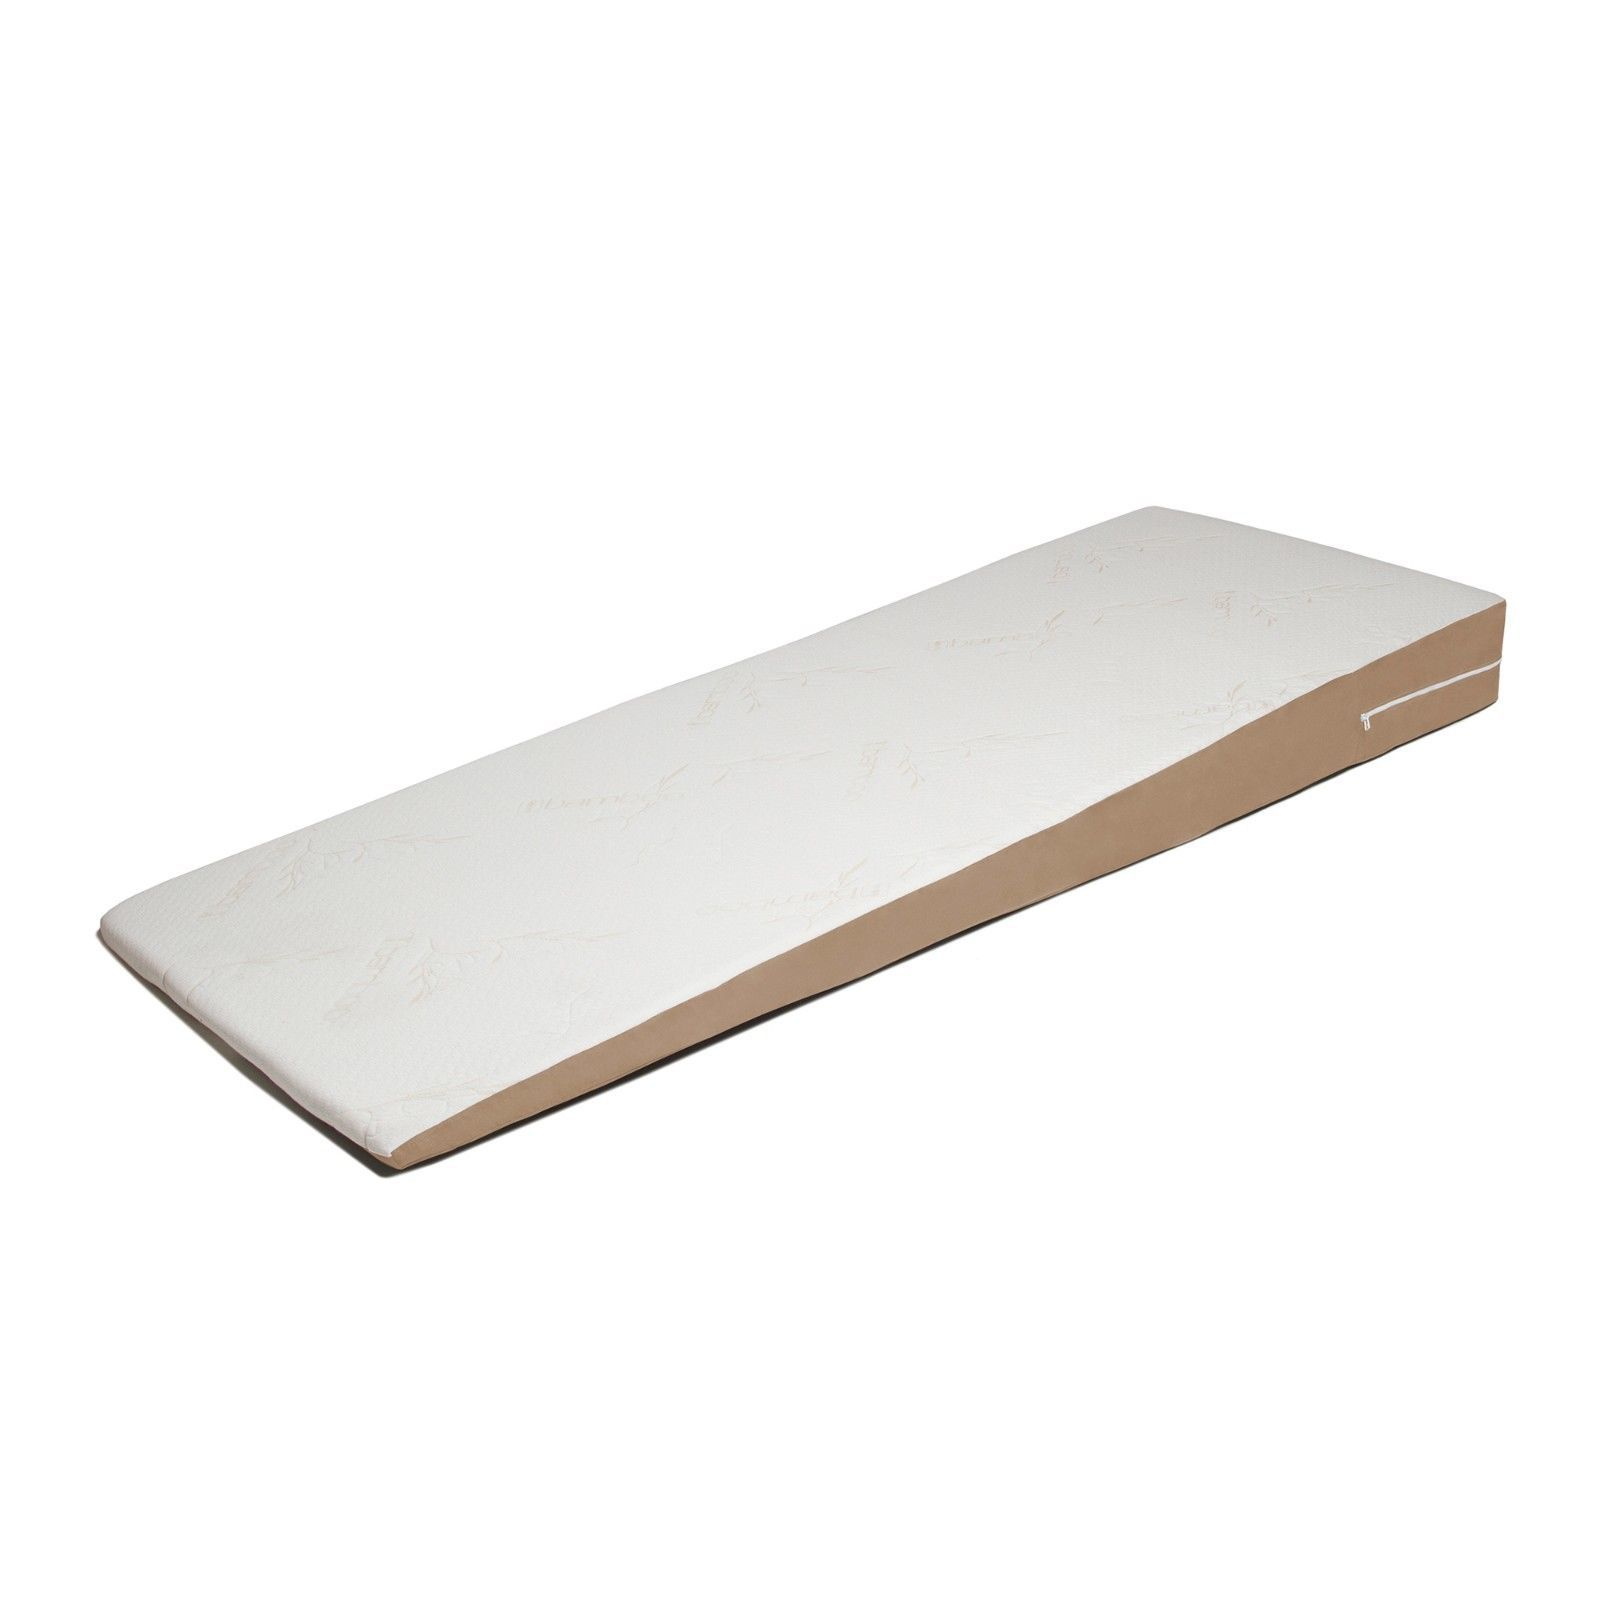 Mattress Wedge For Full Size Bed